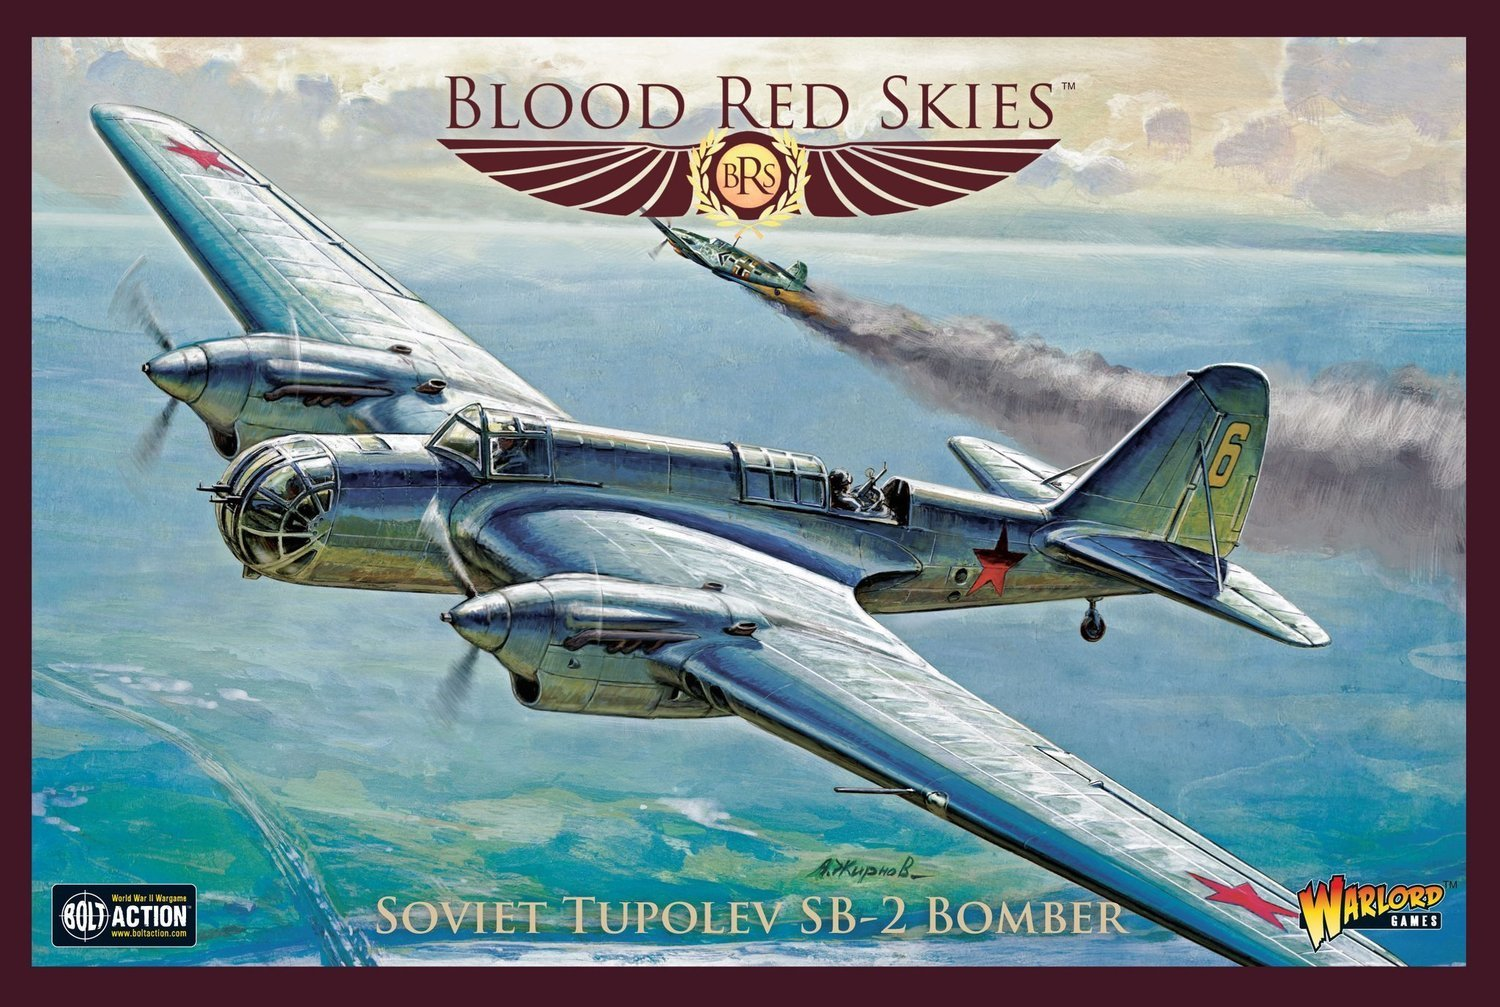 Soviet Tupolev ANT-40 (SB-2) Soviet Bomber - Blood Red Skies - Warlord Games